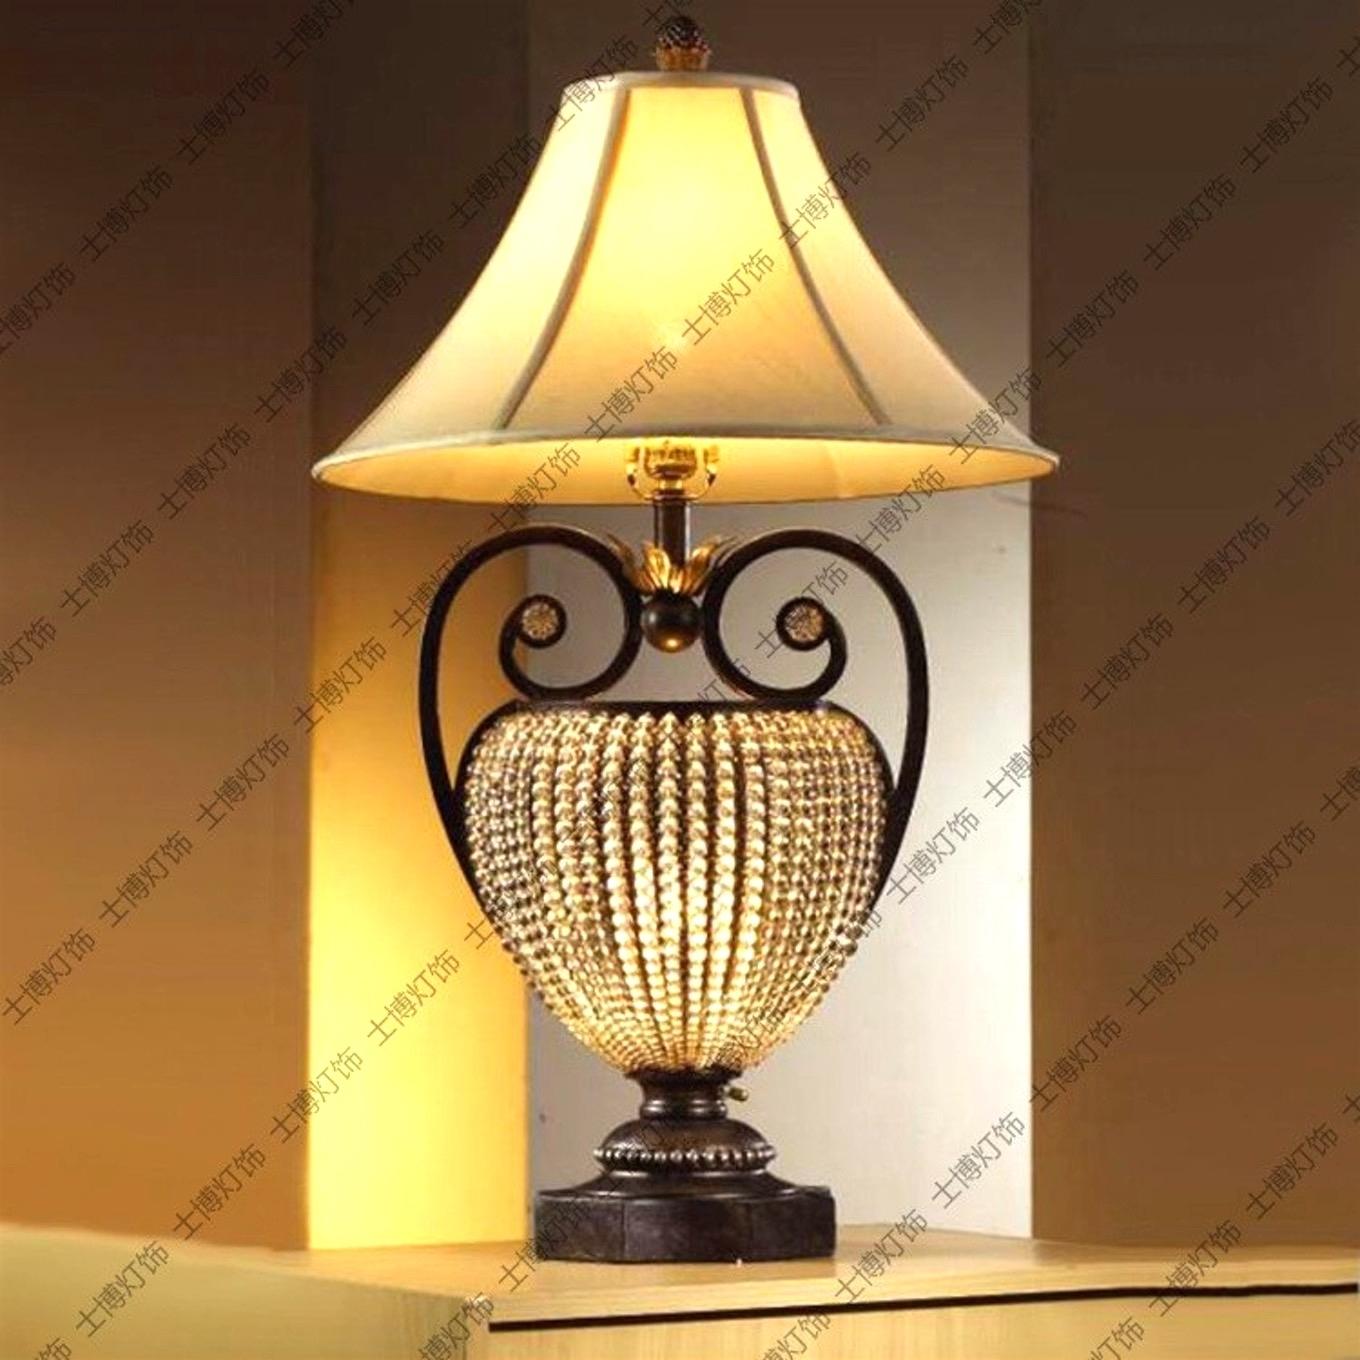 Widely Used Traditional Table Lamps For Living Room Throughout Bedside Lamps ~ Traditional Table Lamps For Living Room Traditional (View 15 of 15)